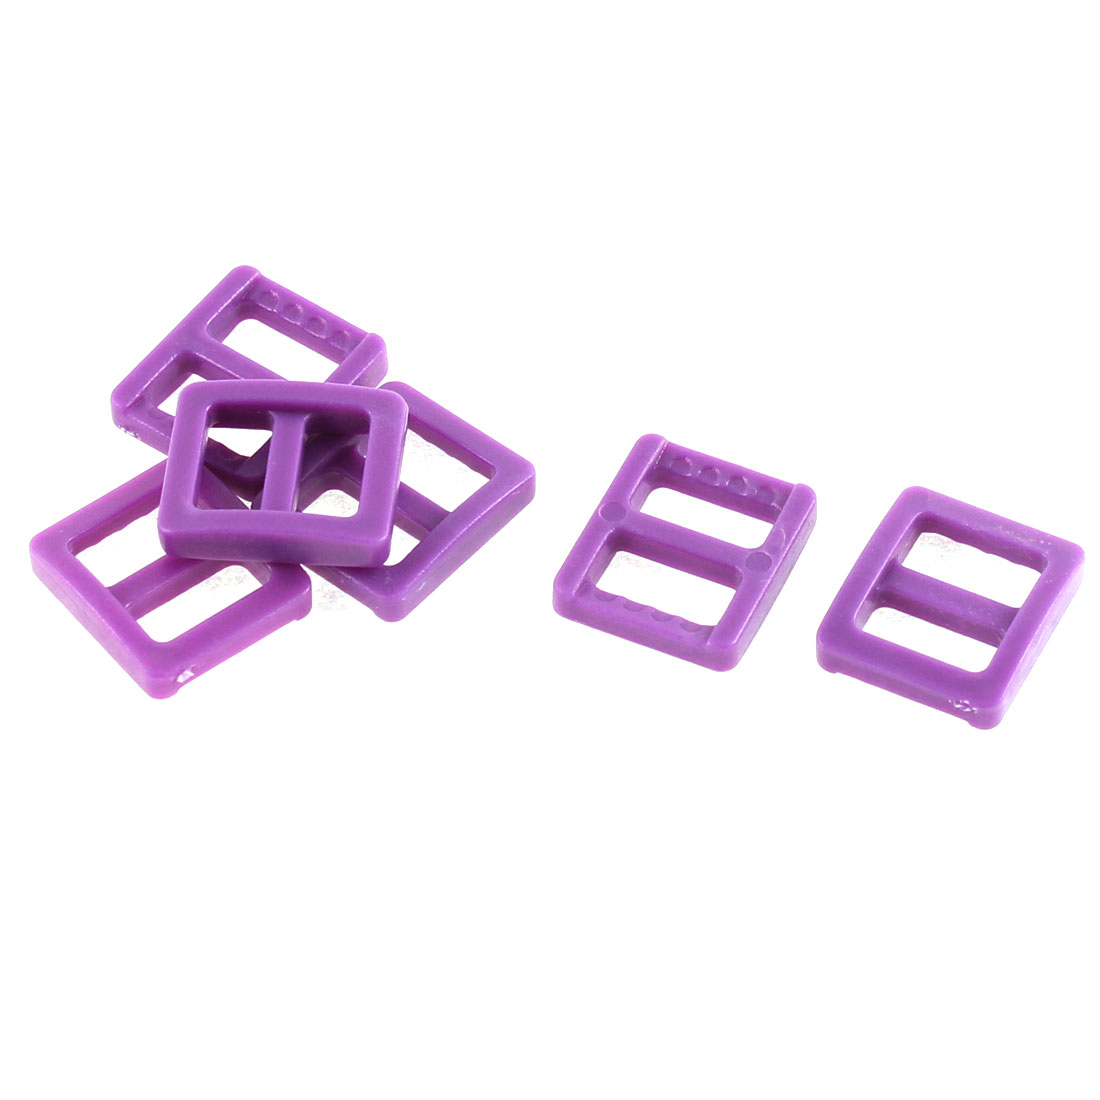 Backpack Handbag Hard Plastic Repairing Tool Tri Glide Buckle Dark Purple 6 Pcs